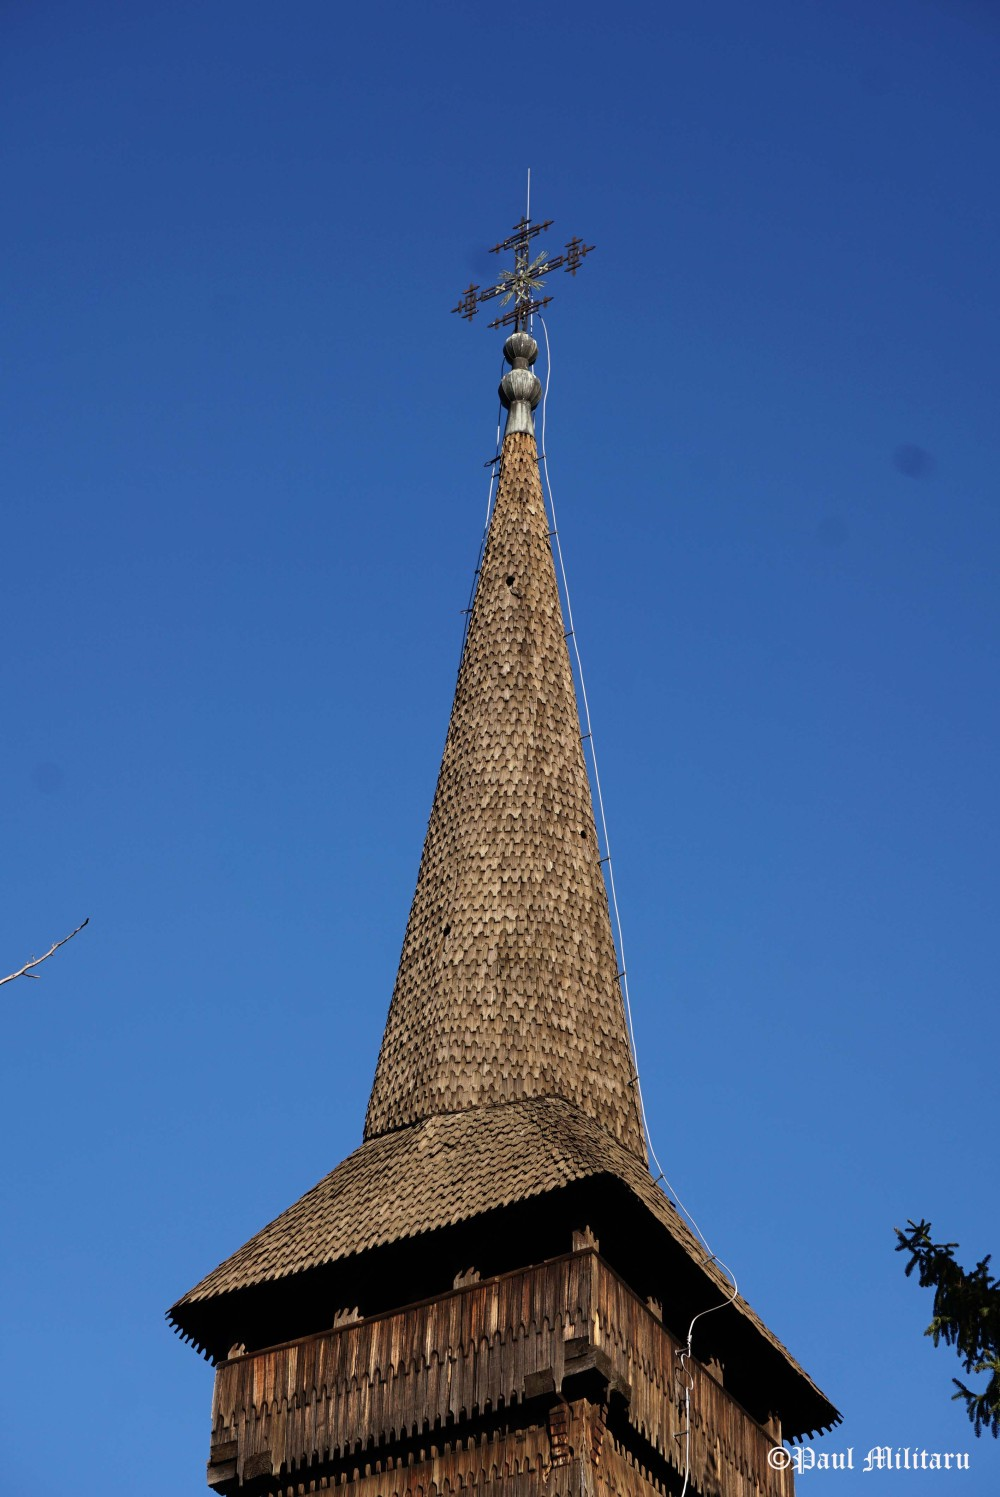 steeple-church-in-maramures